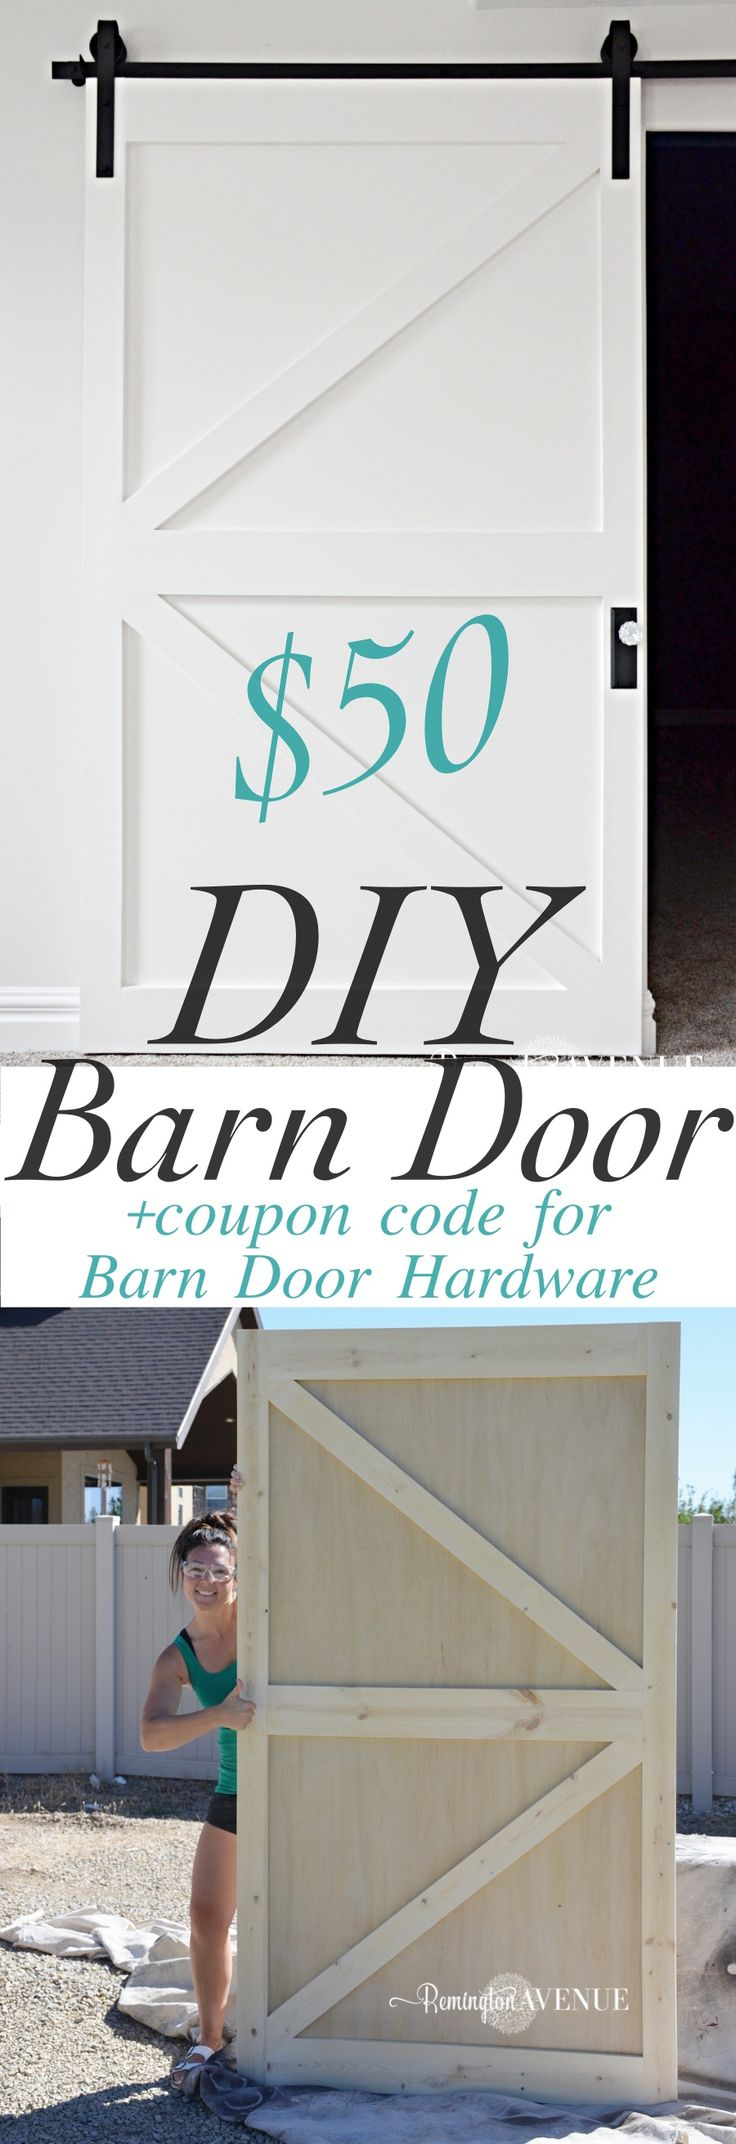 Decorating rustic sliding barn door hardware photographs : Best 25+ Sliding barn doors ideas on Pinterest | Barn doors ...